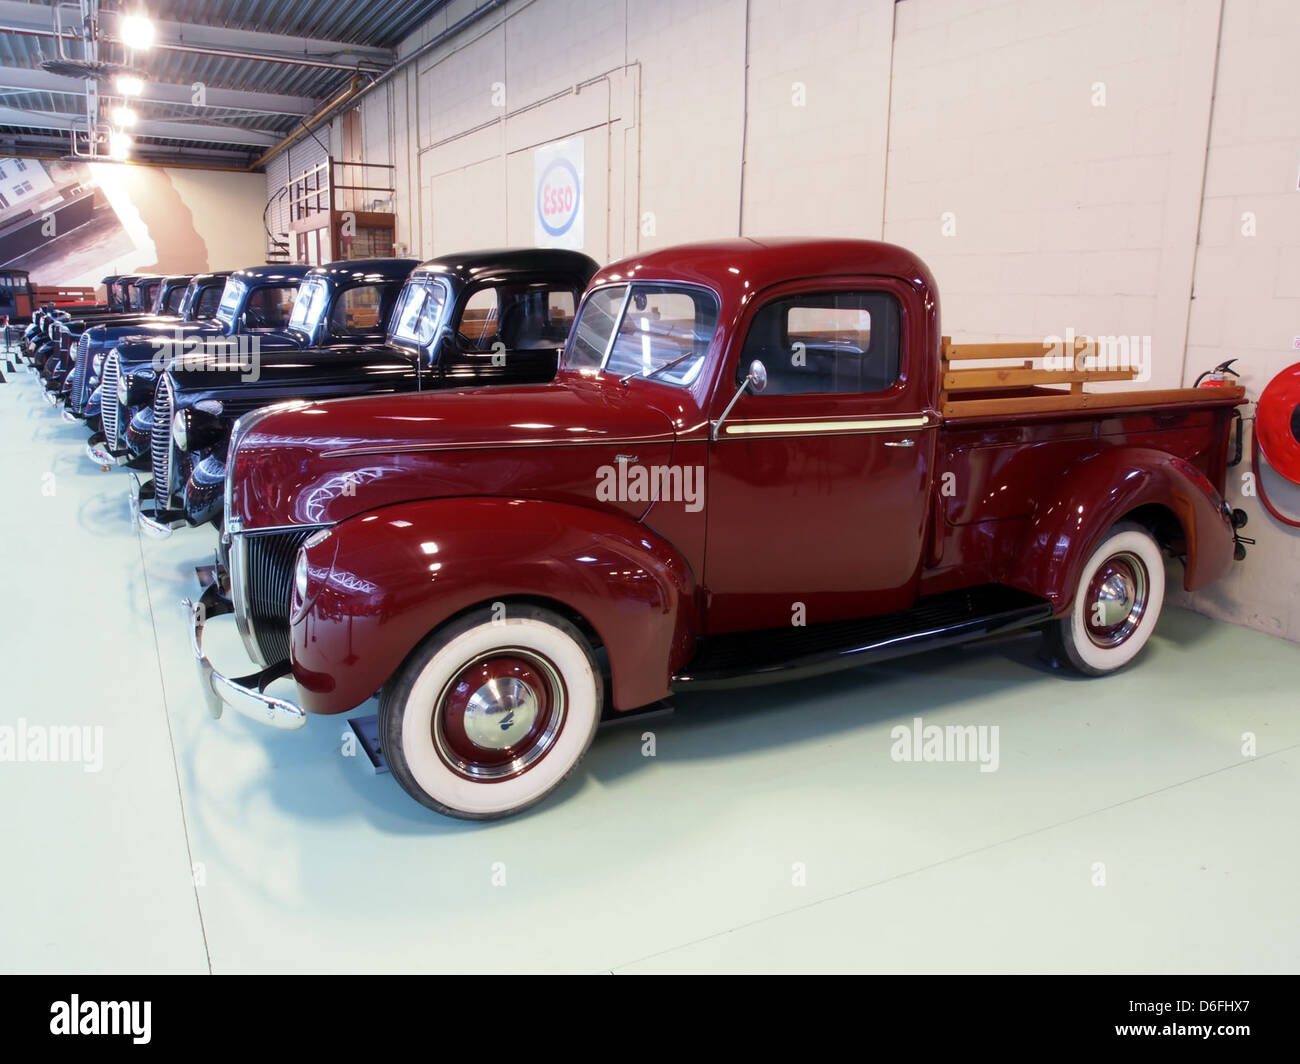 1940 Ford Pickup Stock Photos & 1940 Ford Pickup Stock Images - Alamy